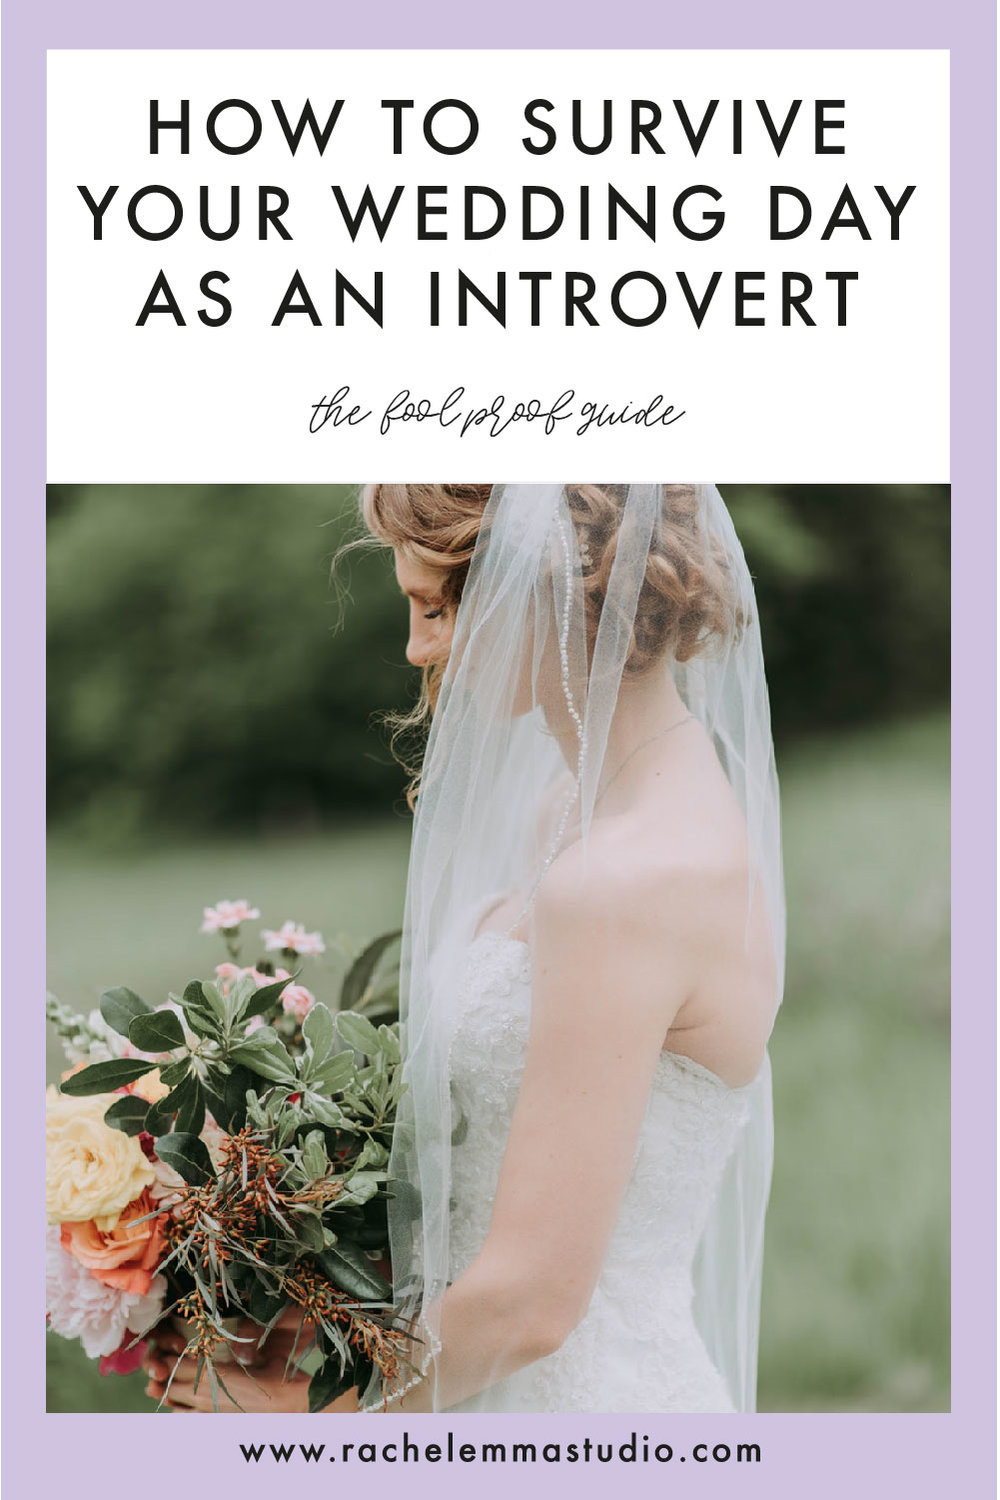 Introvert wedding tips